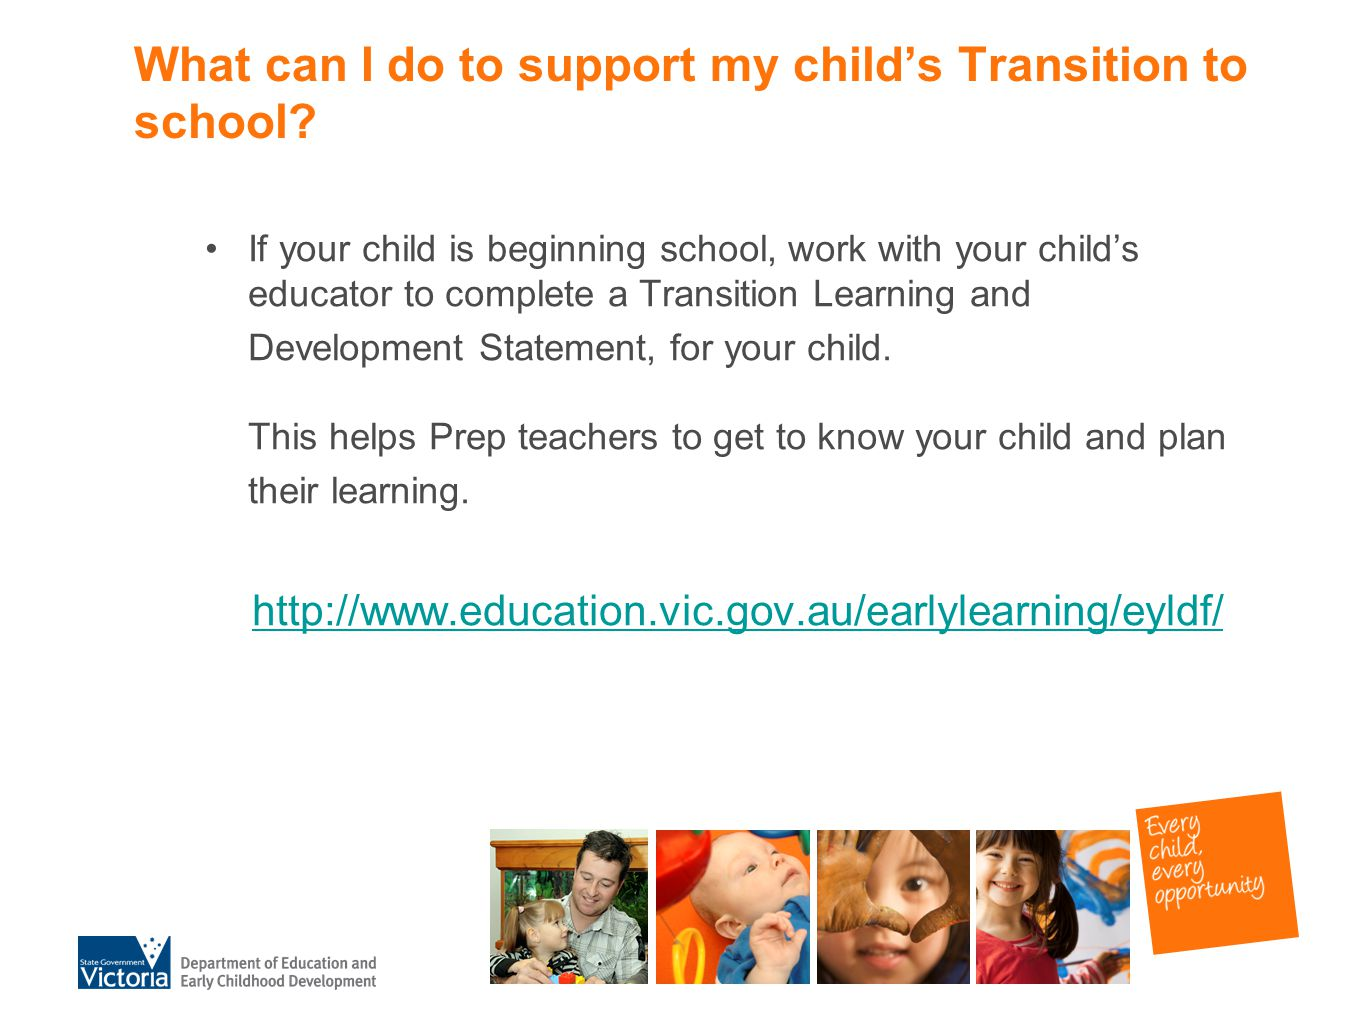 What can I do to support my child's Transition to school? If your child is beginning school, work with your child's educator to complete a Transition